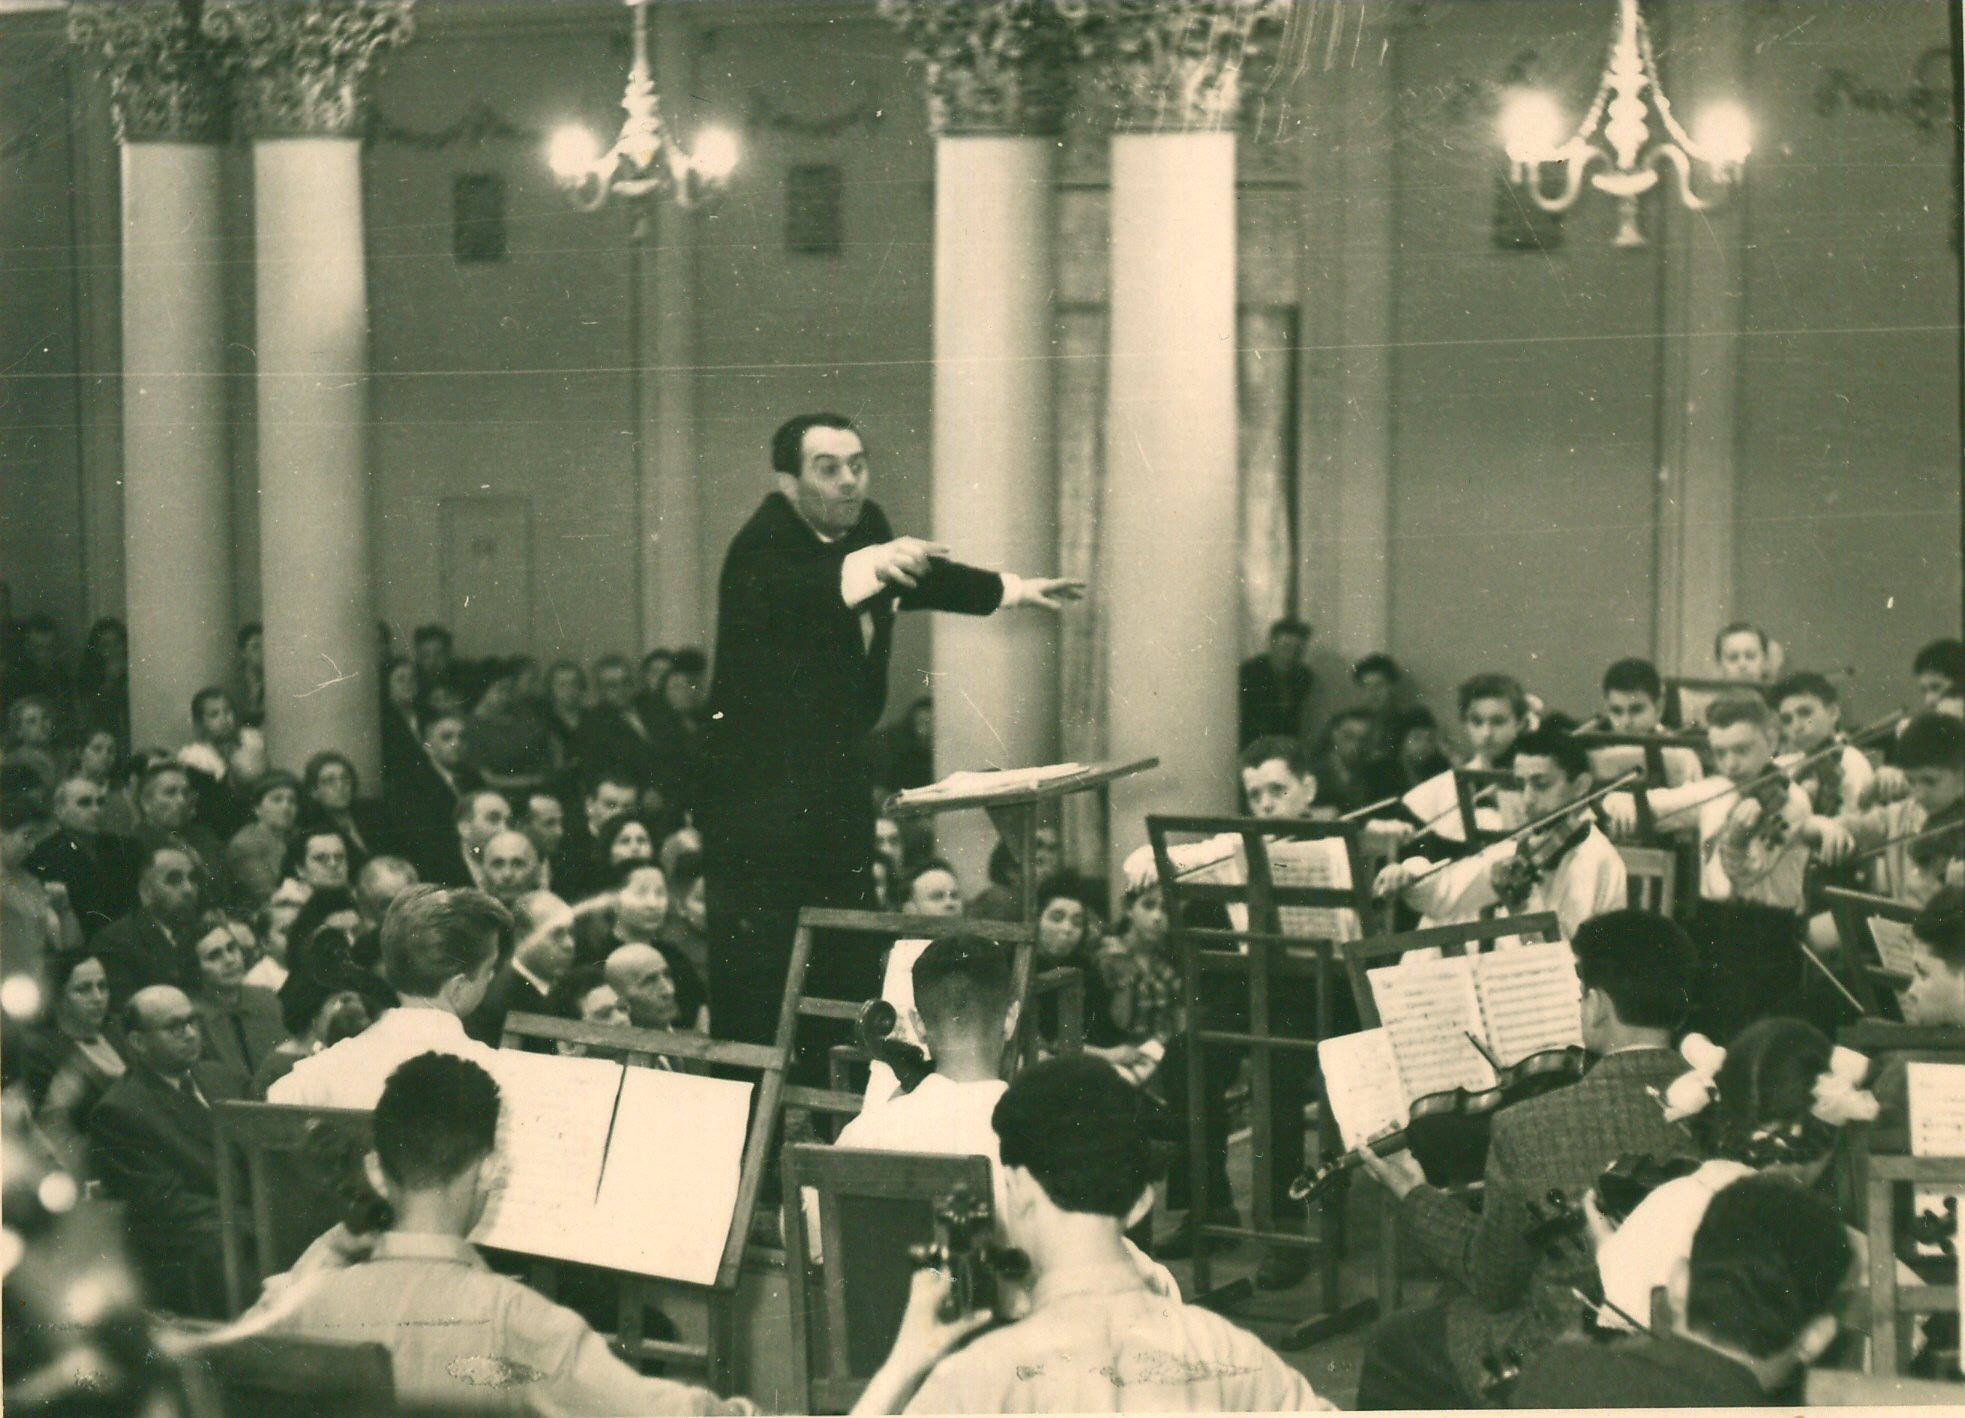 Vladimir Yeshayavitch Novak, a beloved and honored violin pedagogue and violinist in Kiev Philharmonic. Conducting the youth orchestra in the historic concert hall in the Khrestchaty Park in Kiev, Ukraine.